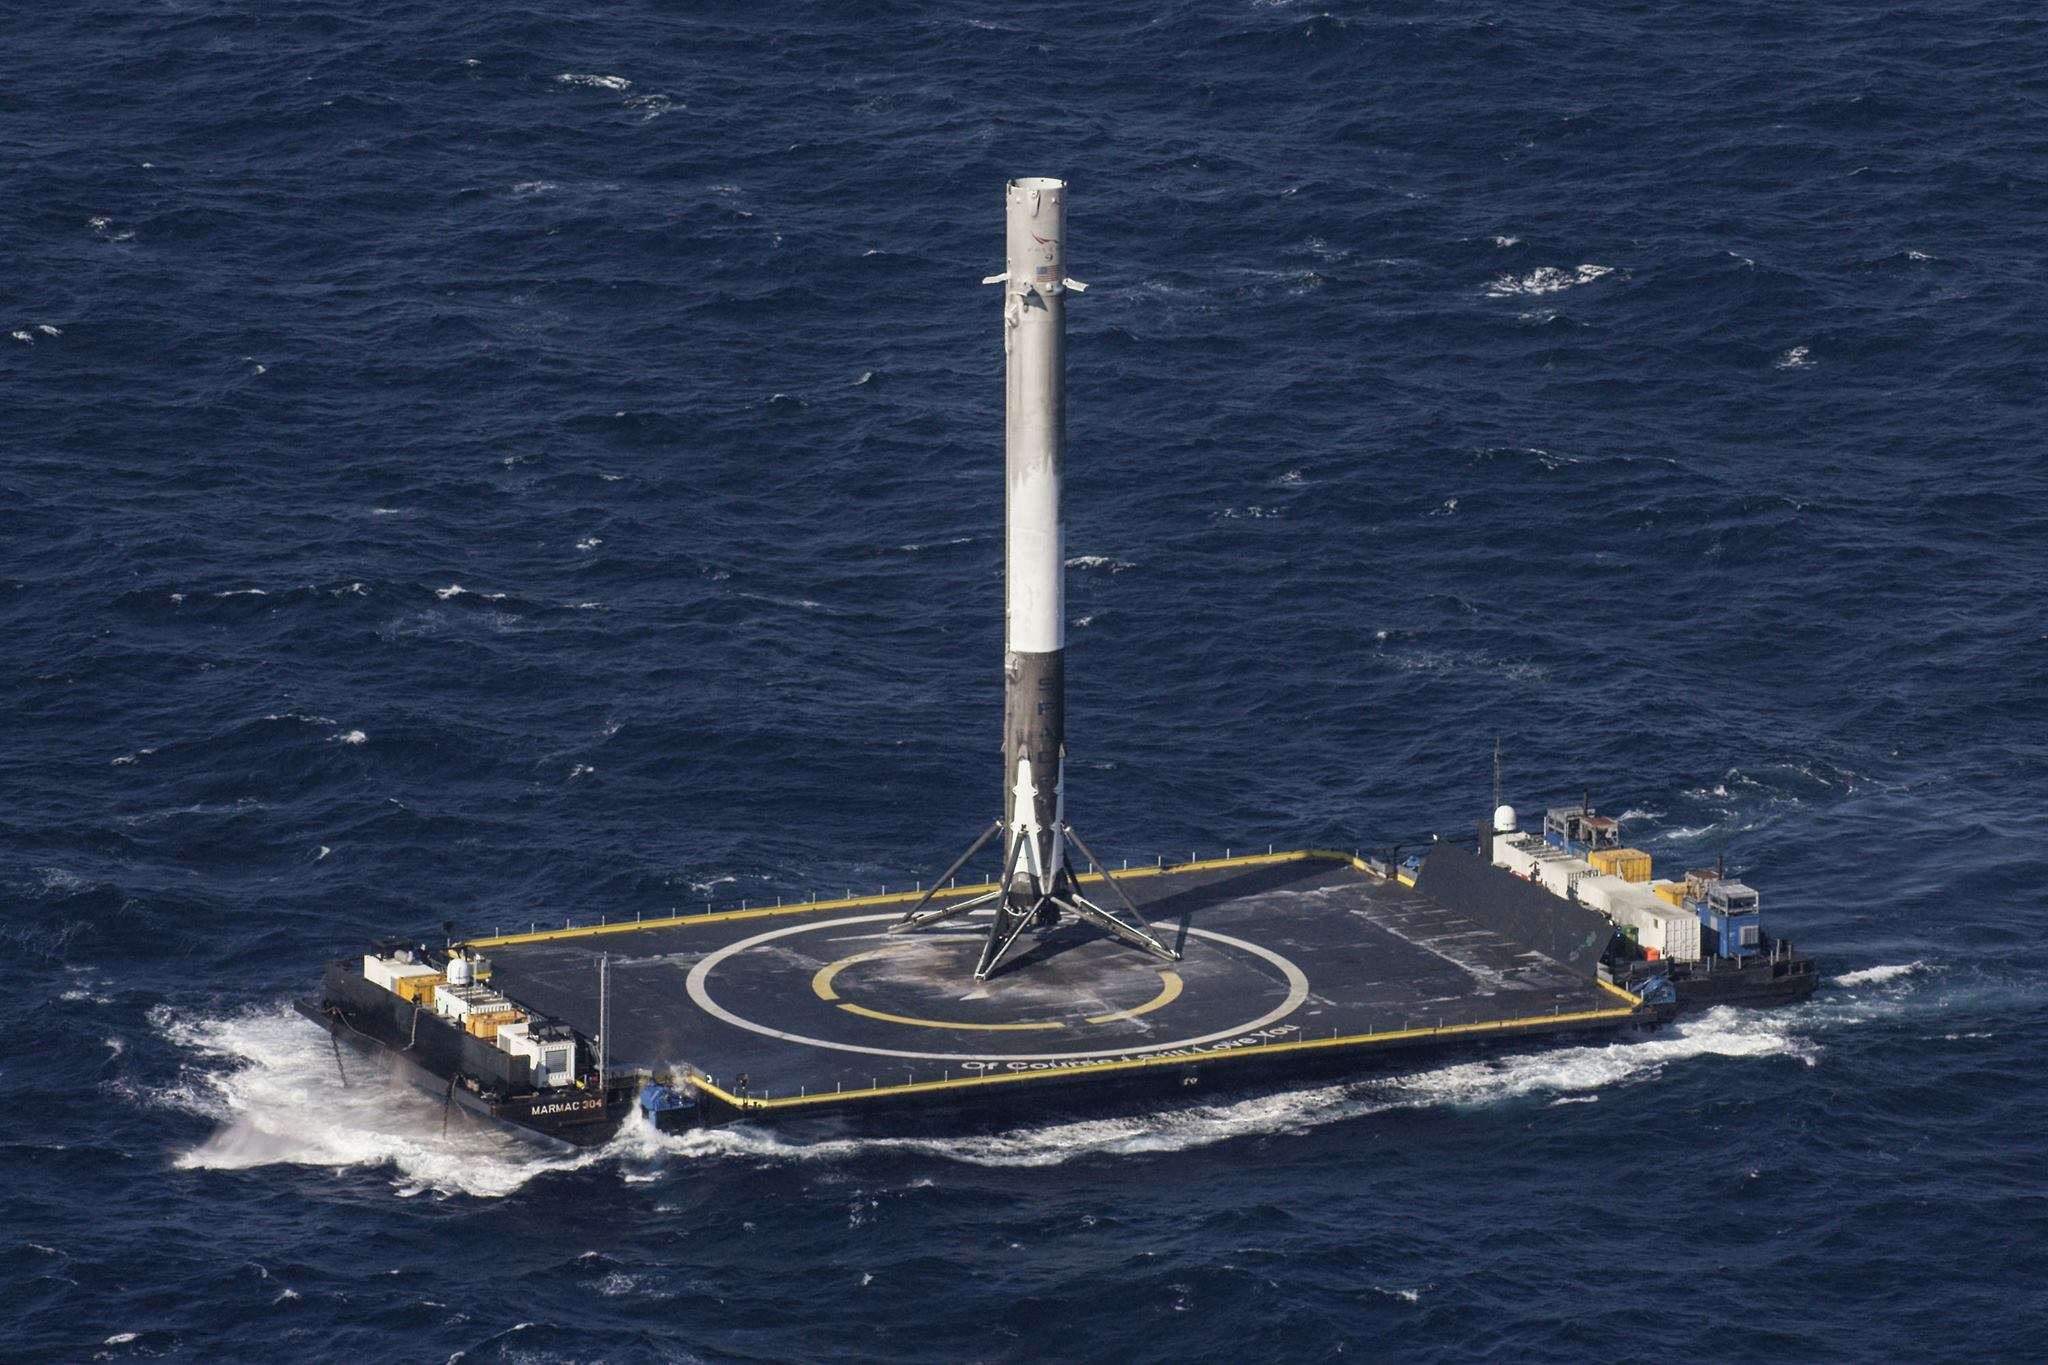 rakieta SpaceX Falcon 9 Block 5